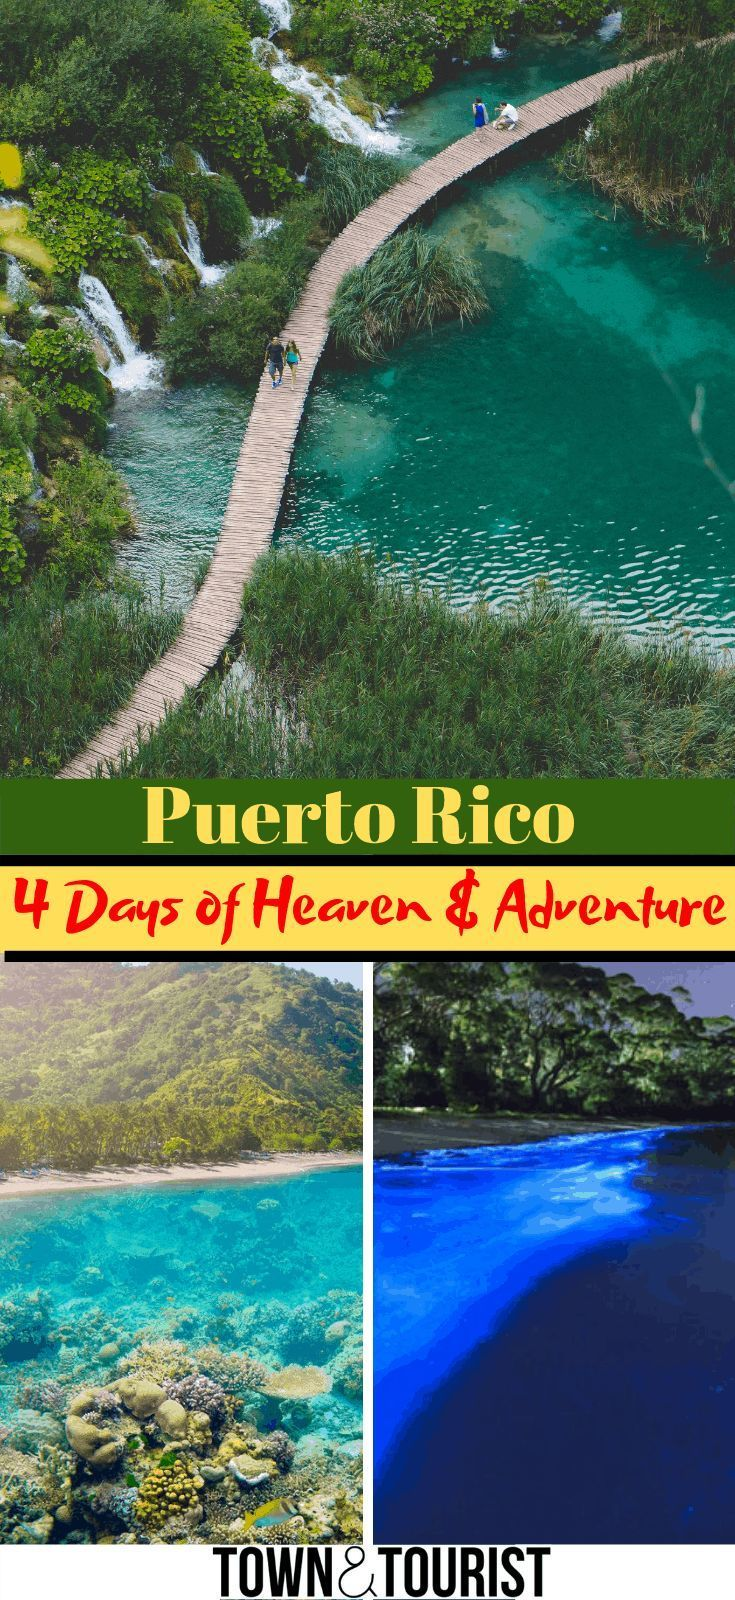 Puerto Rico Vacation Guide 4 Day Itinerary San Juan Things To Do Puerto Rico Culture Beaches Puert Puerto Rico Vacation Vacation Guide Puerto Rico Trip